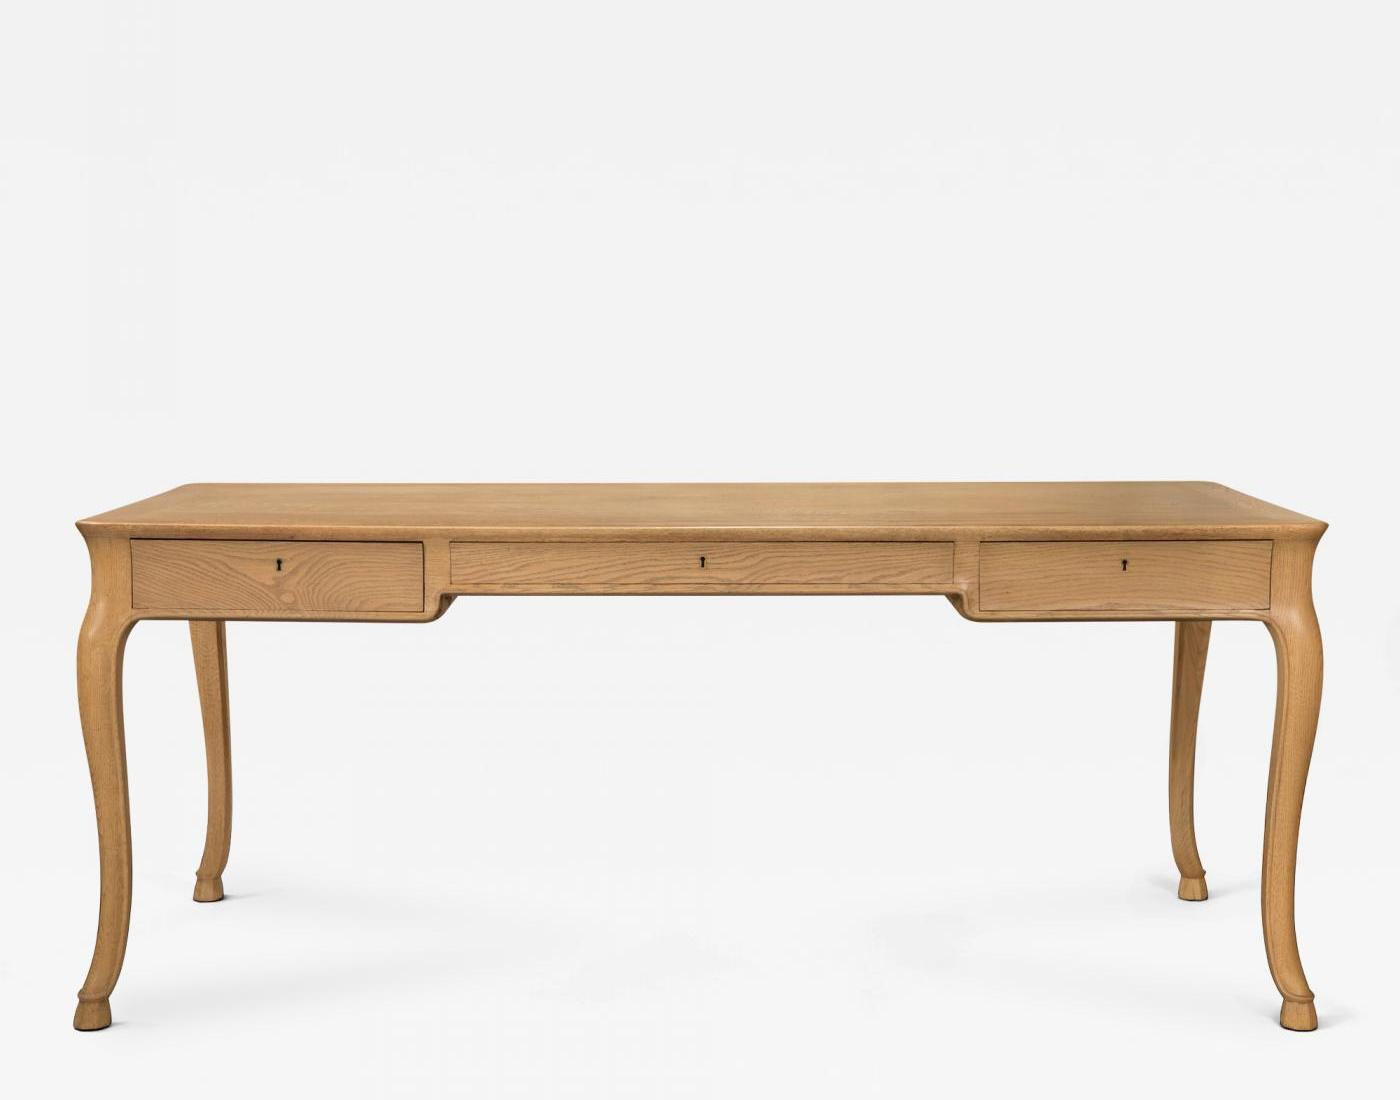 Bon A Large Danish Elm And Oak Writing Table By Frits Henningsen, Circa 1950.  Offered By H.M. Luther.